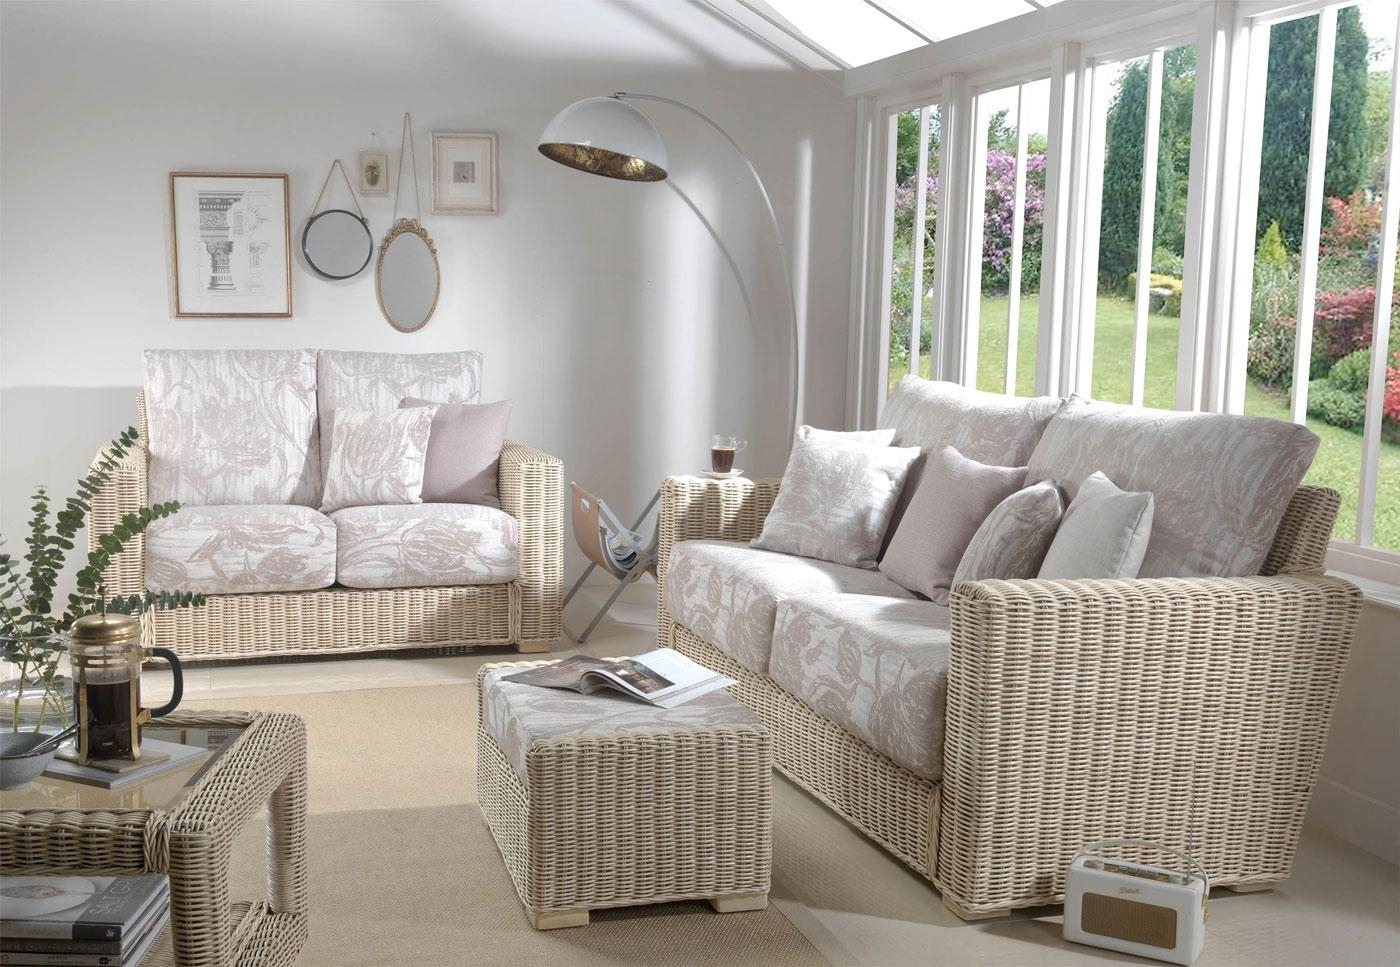 Indoor Can Furniture And Accessories – Spa Home Improvements With Regard To White Cane Sofas (Image 13 of 25)